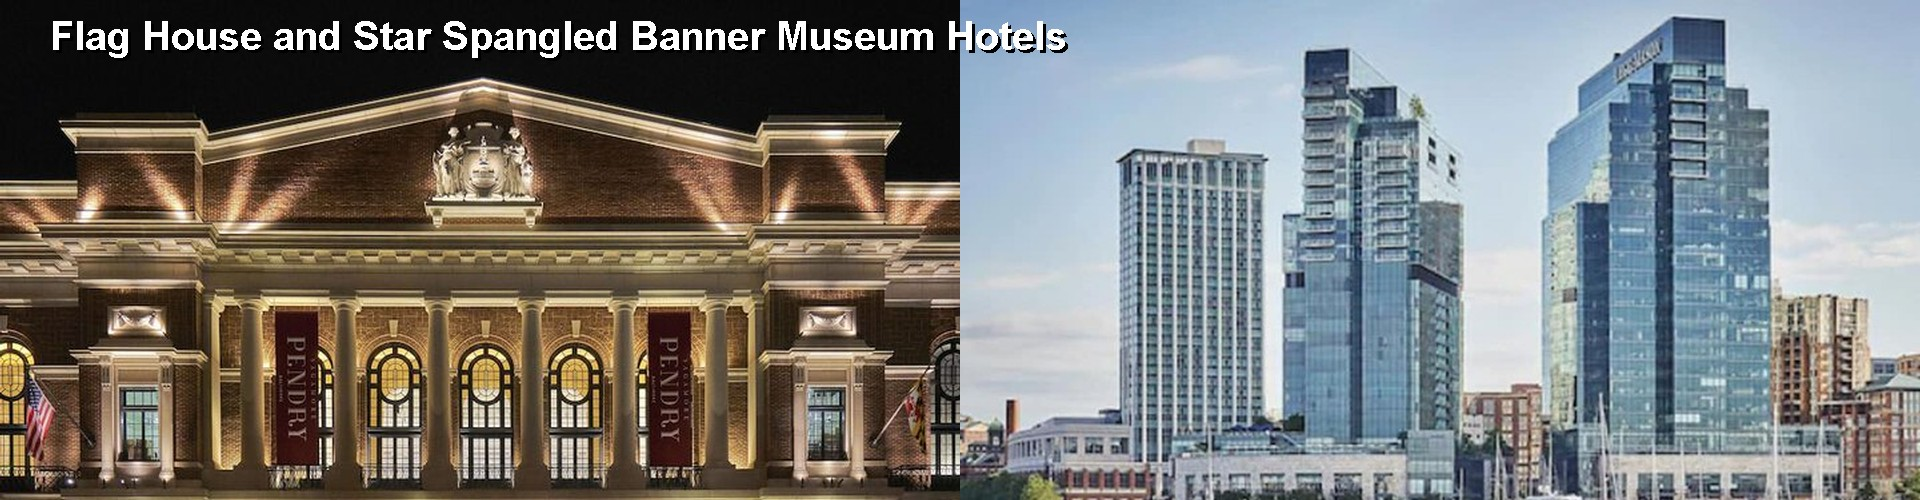 5 Best Hotels near Flag House and Star Spangled Banner Museum